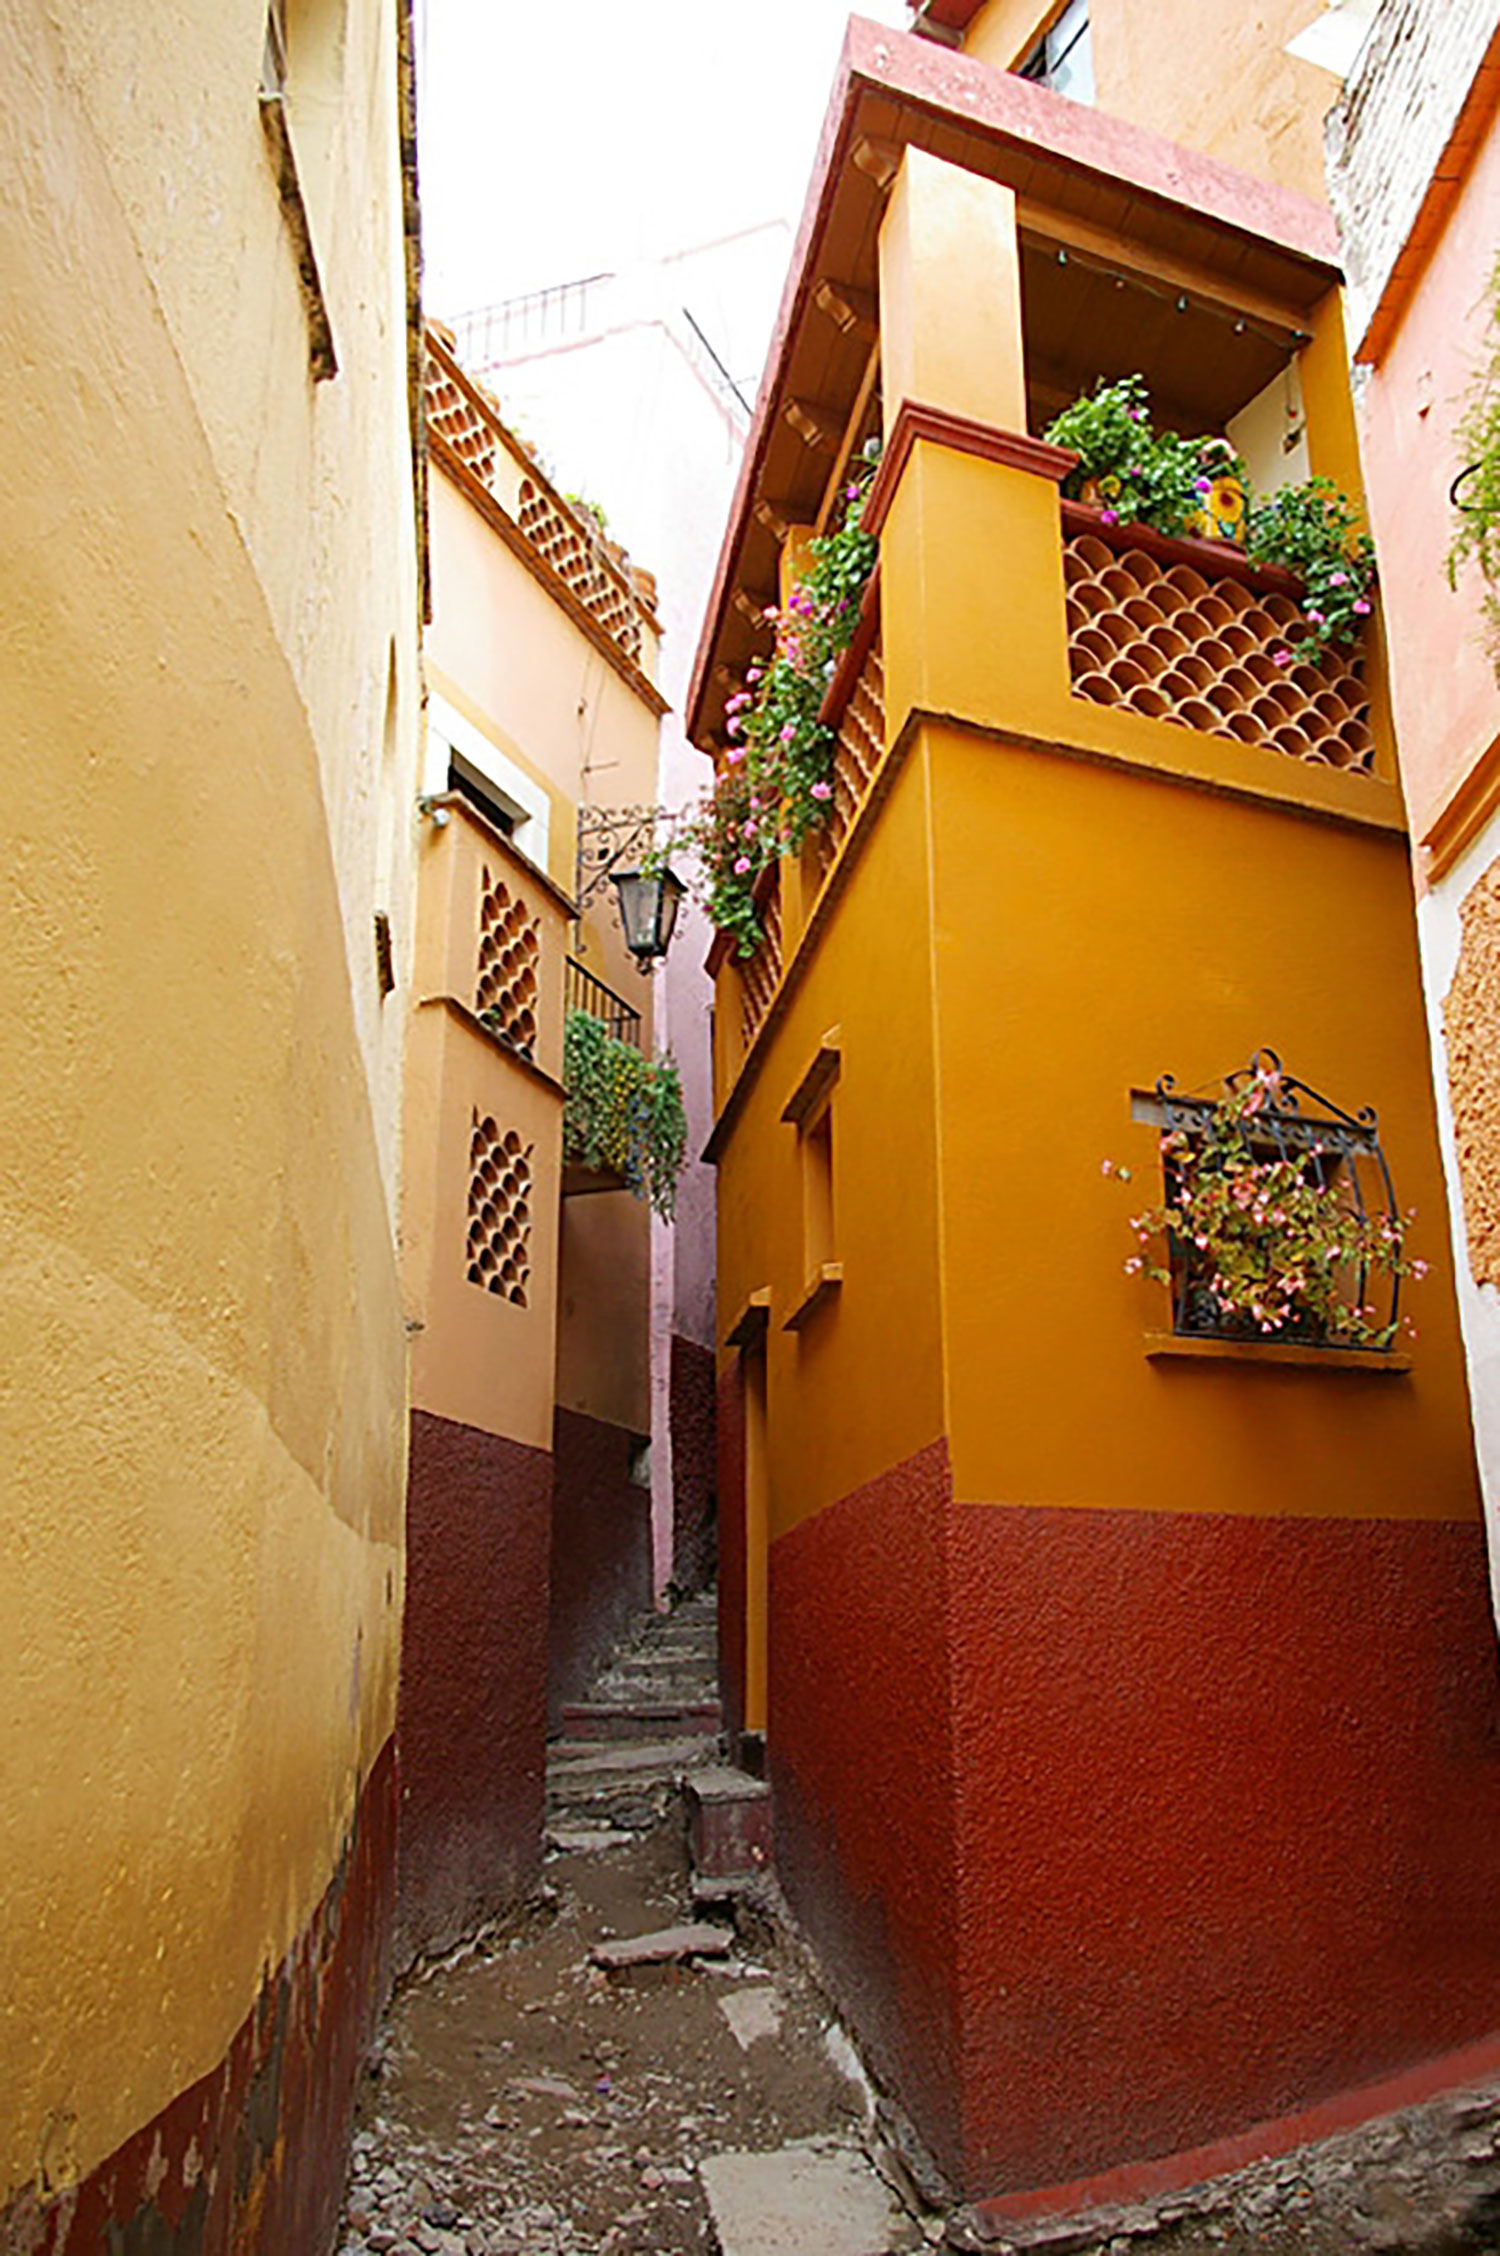 Callejón del beso:  commons.wikimedia.org .